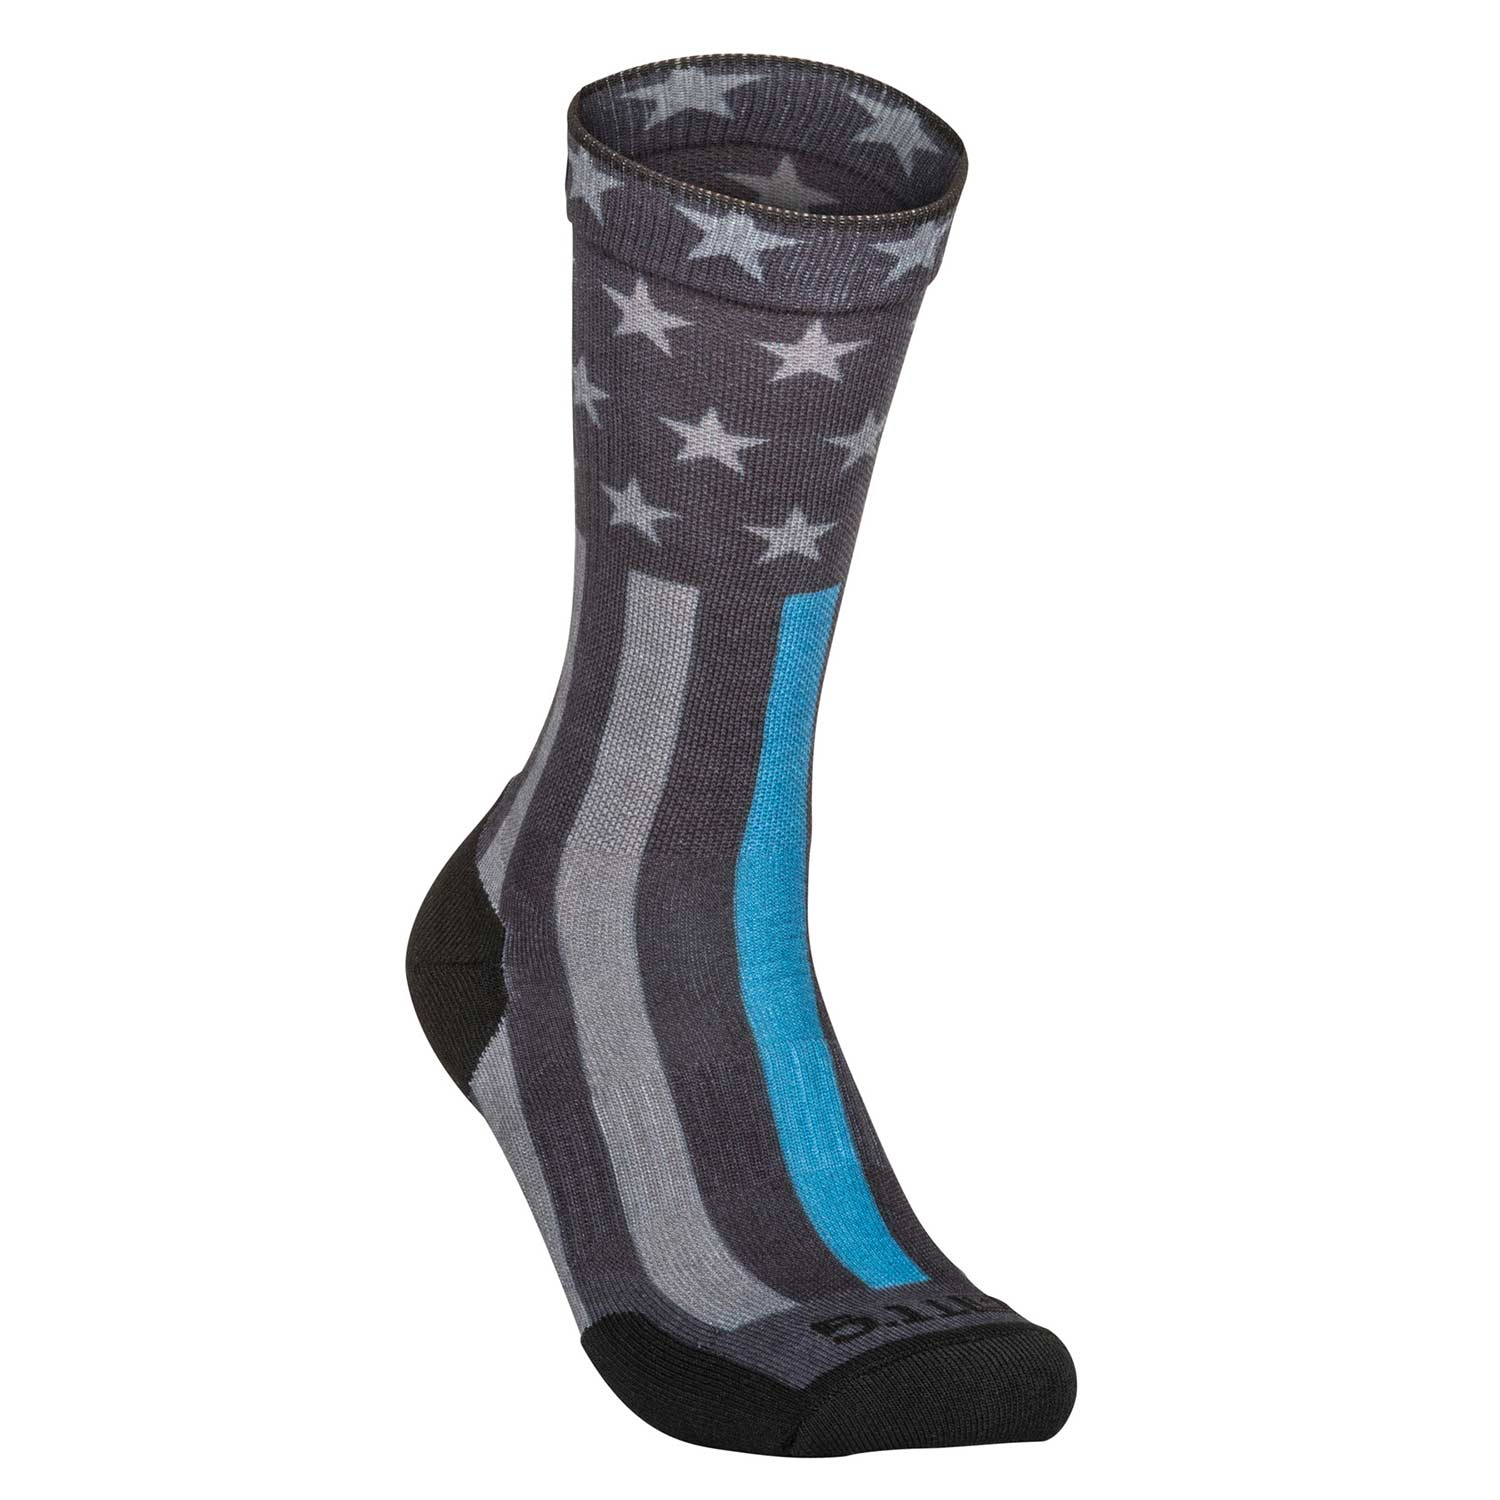 5.11 Tactical Sock and Awe Crew Dazzle Sock